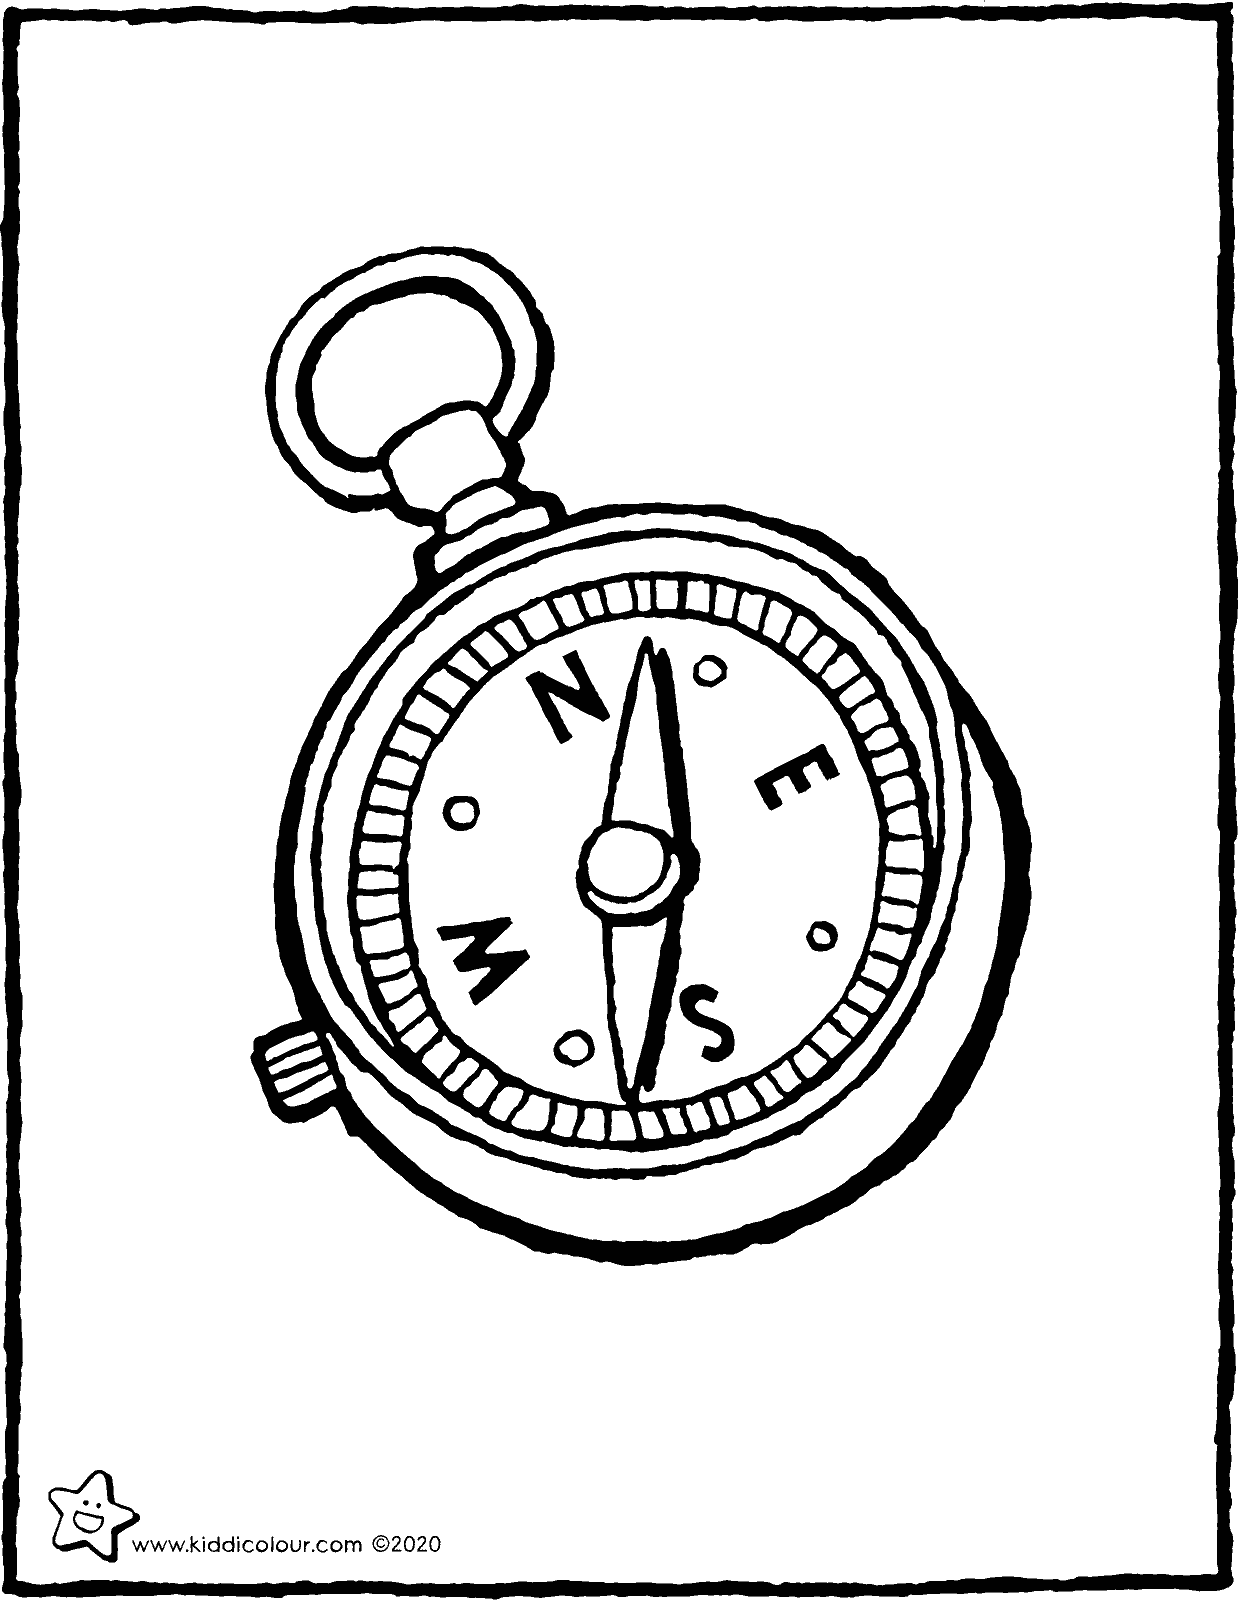 compass colouring page drawing picture 01V